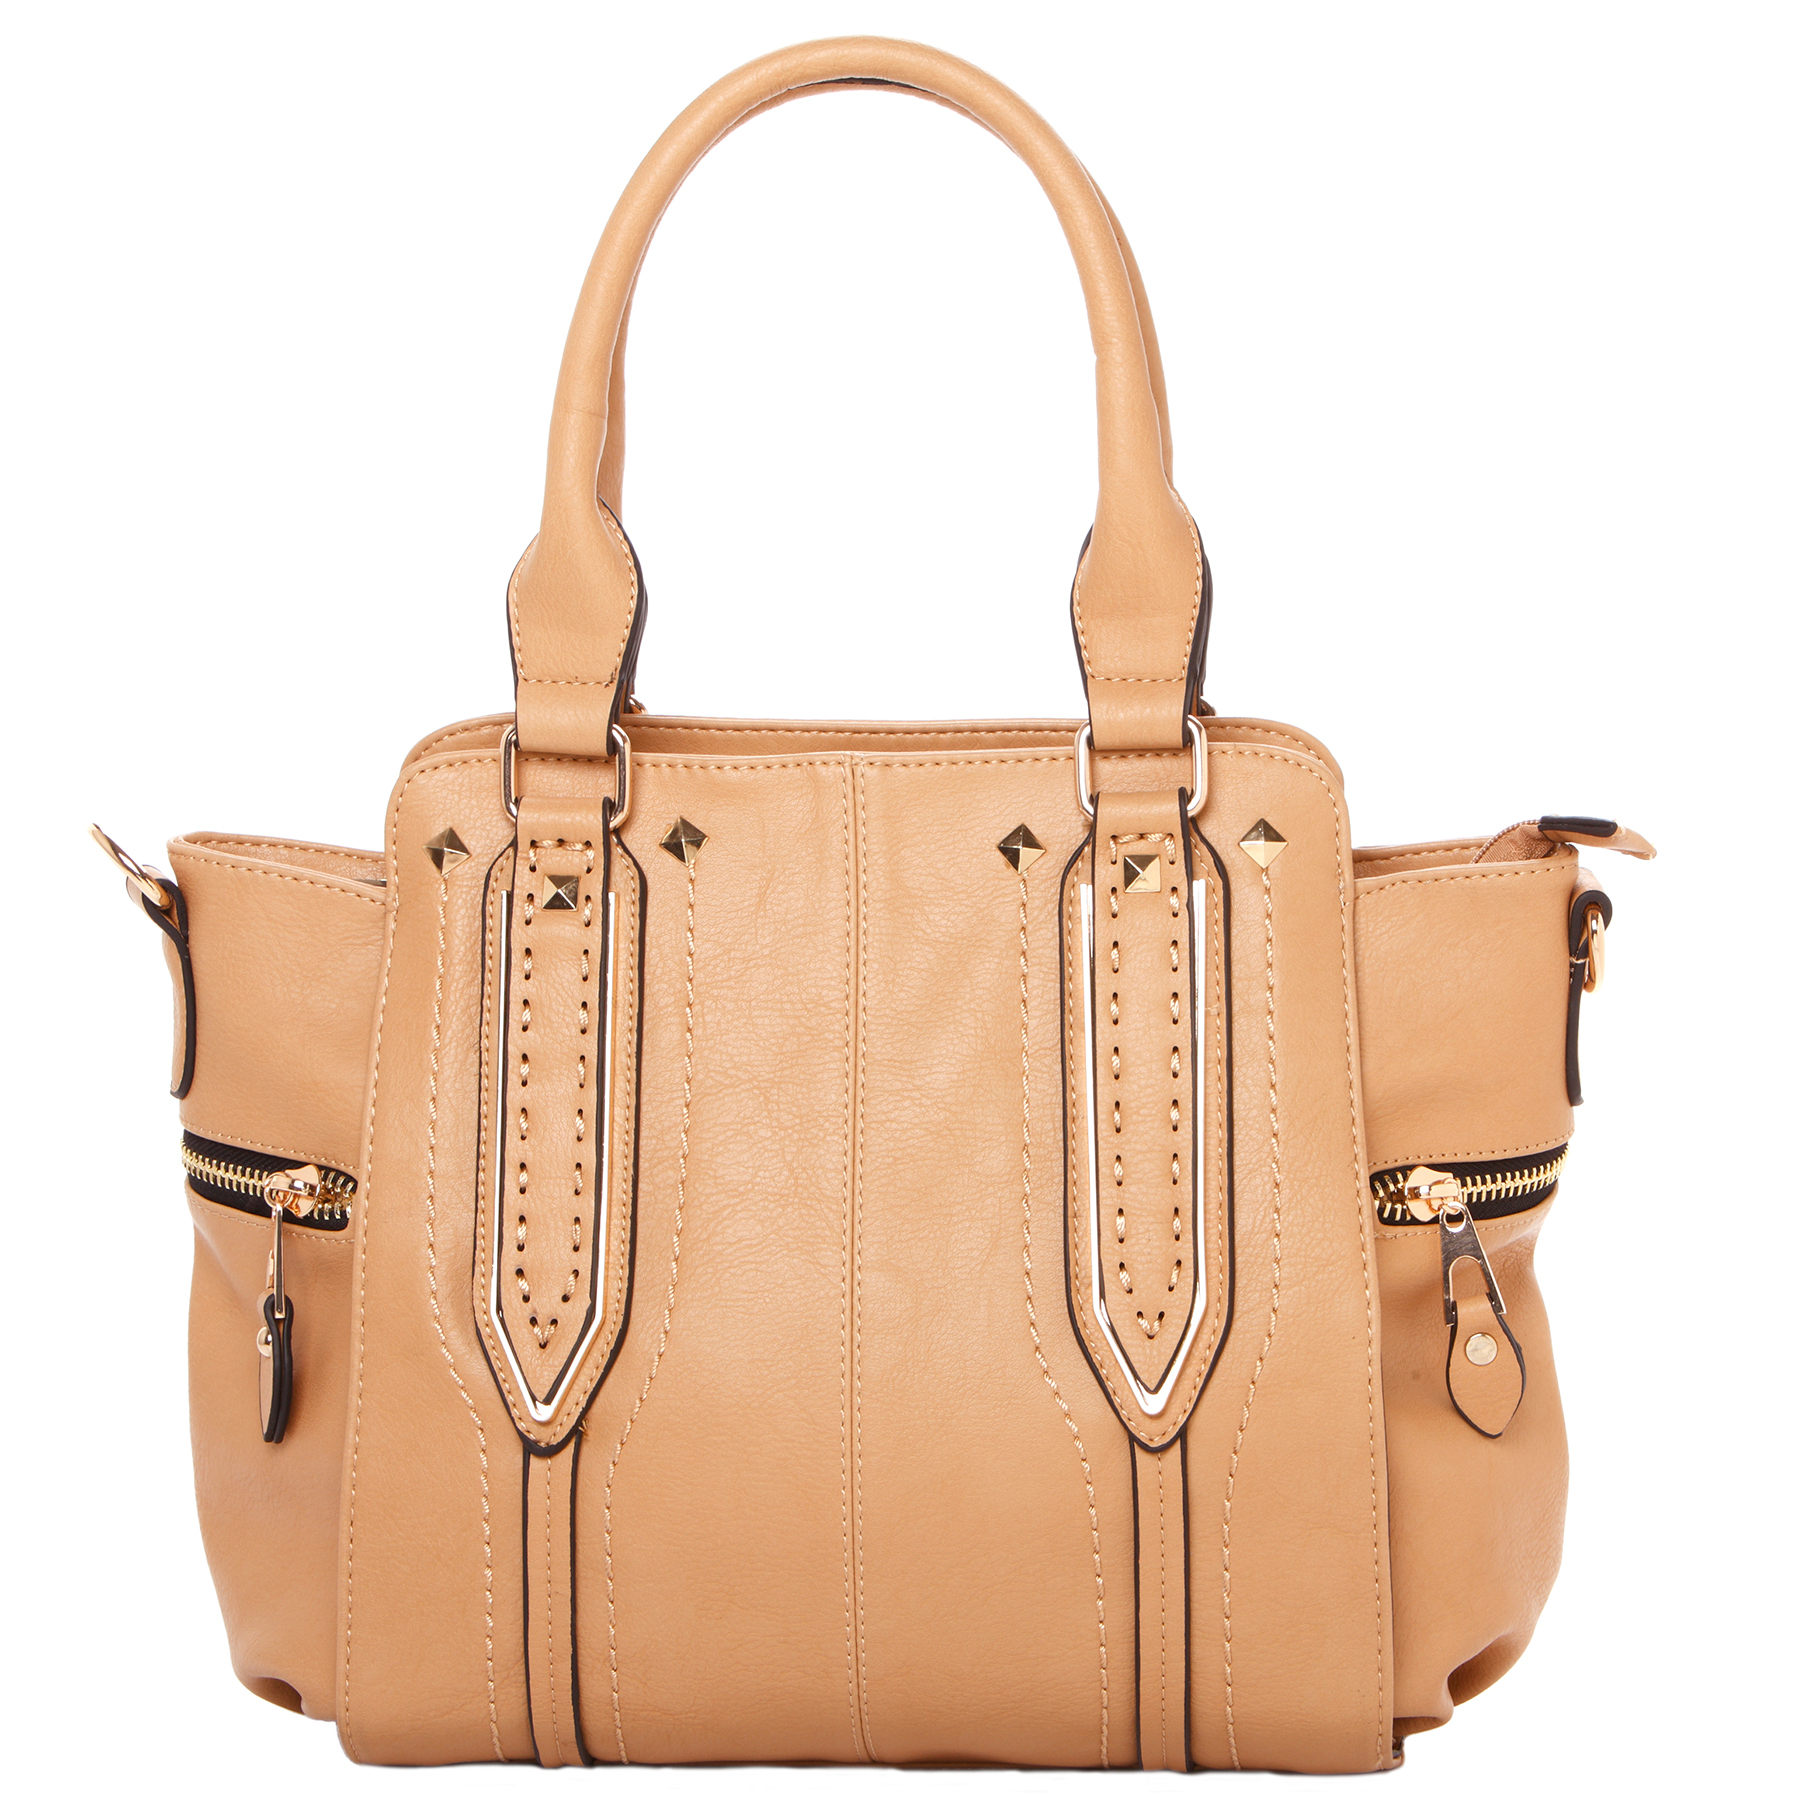 NORI Apricot Top Handle Office Tote Style Handbag front